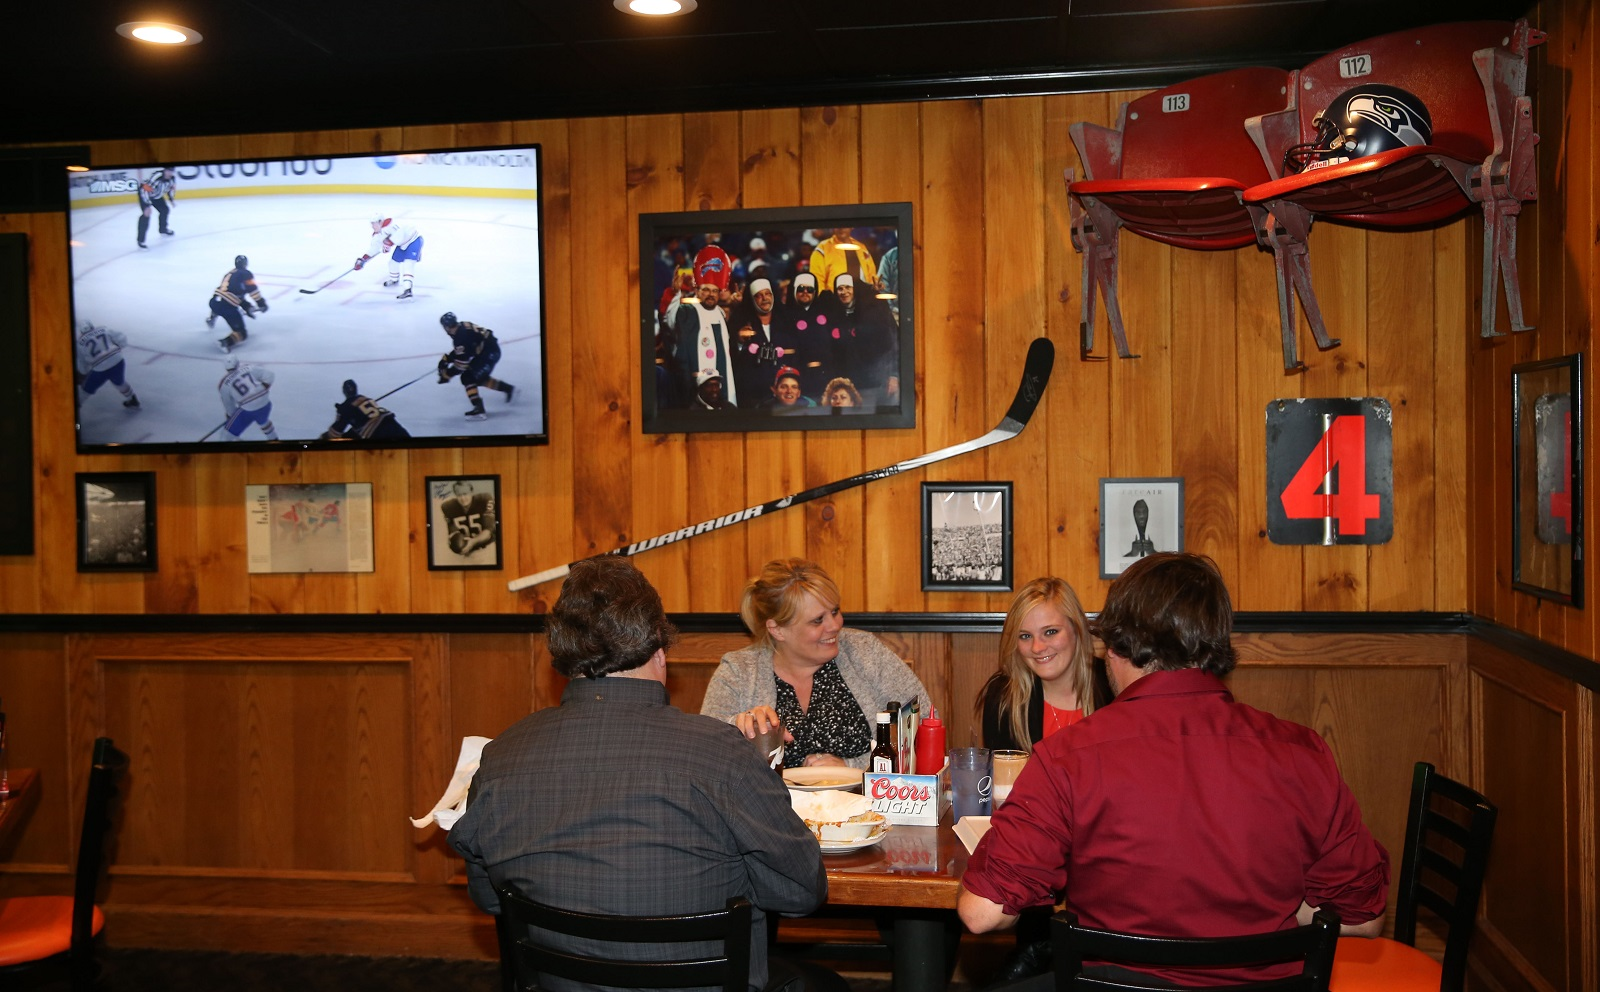 Mooney's newest location is at 1537 Union Road in West Seneca. The walls are filled with local sports sports memorabilia. (Sharon Cantillon/Buffalo News)